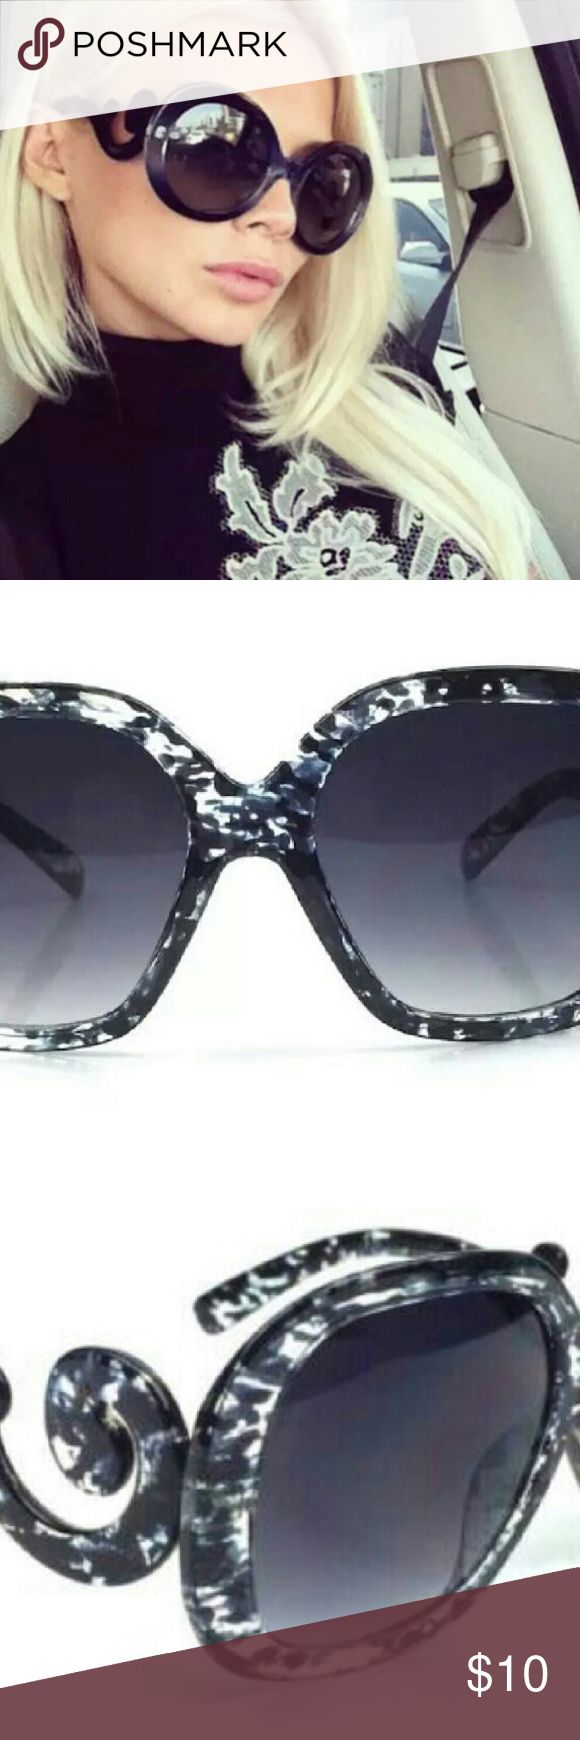 Women's Vintage Sunglasses New with tags Accessories Sunglasses